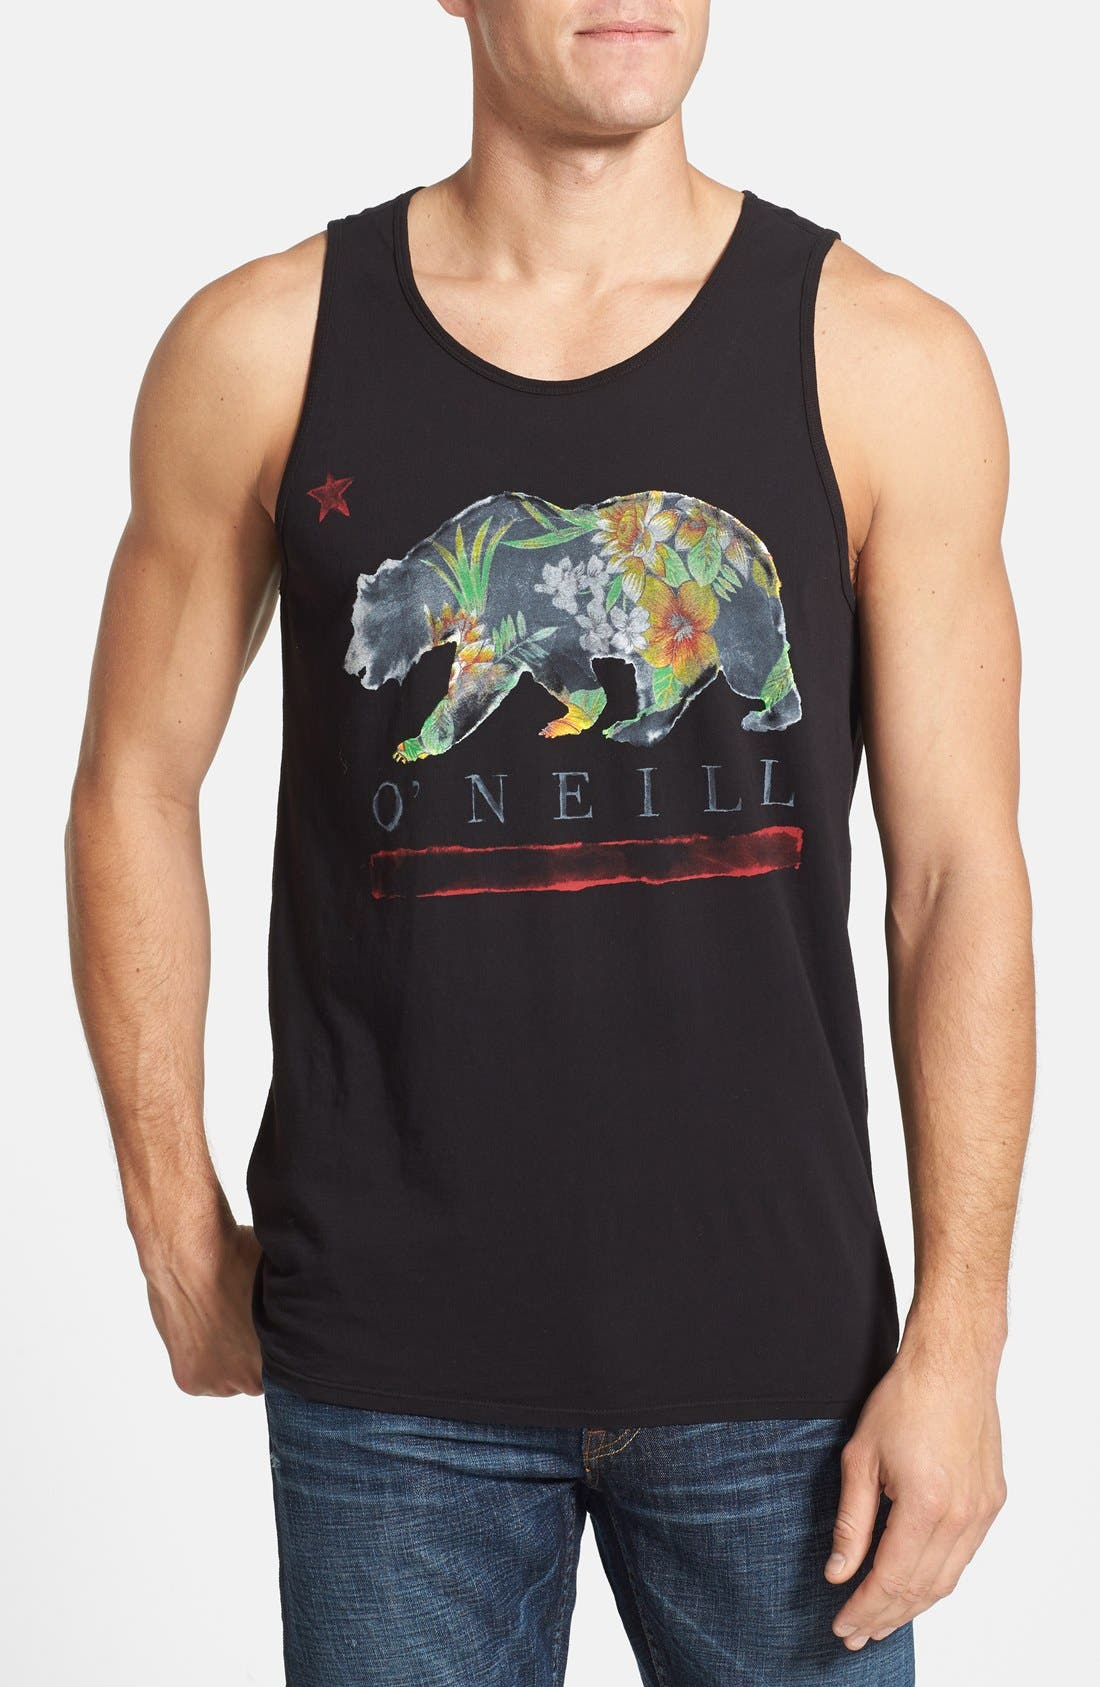 Main Image - Jack O'Neill 'Golden' Graphic Tank Top